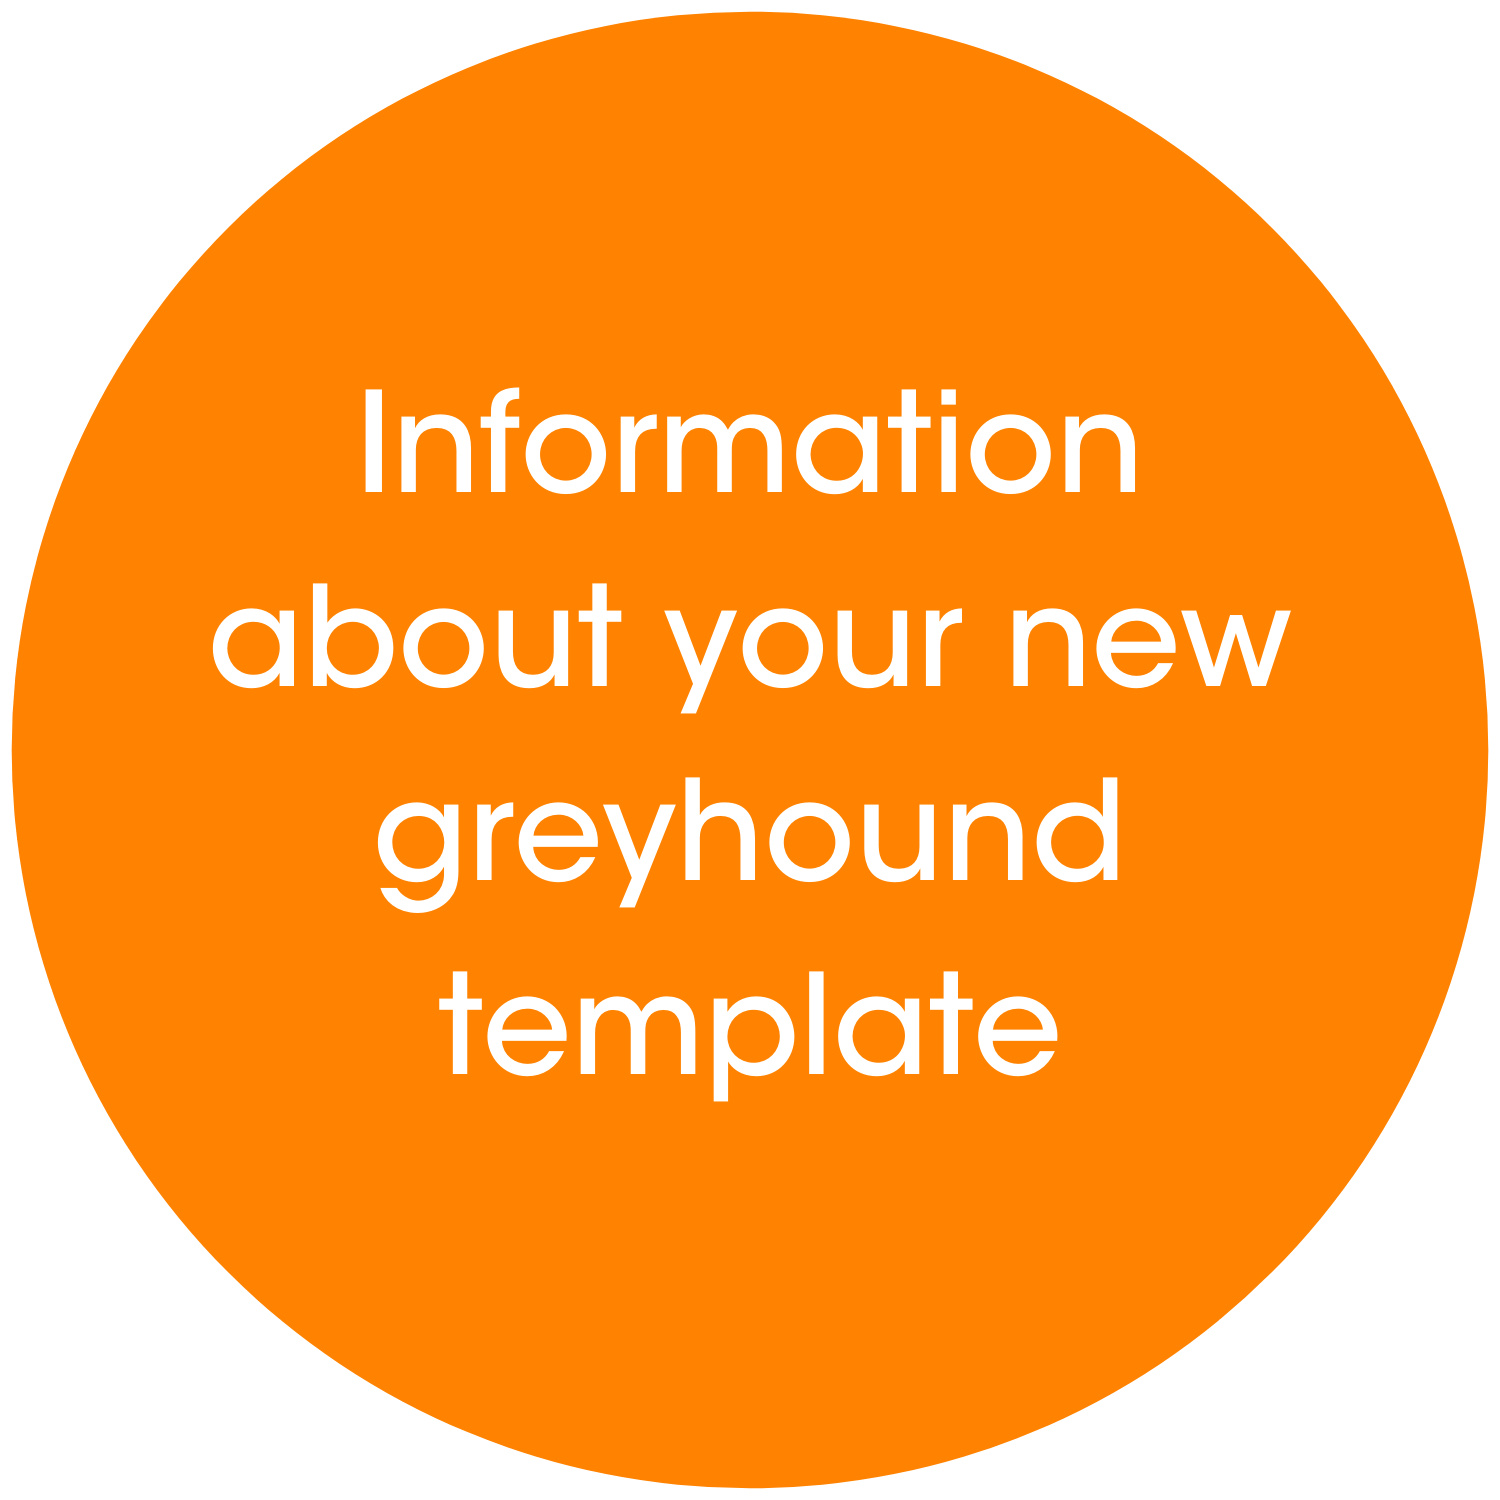 Information about your new greyhound template link